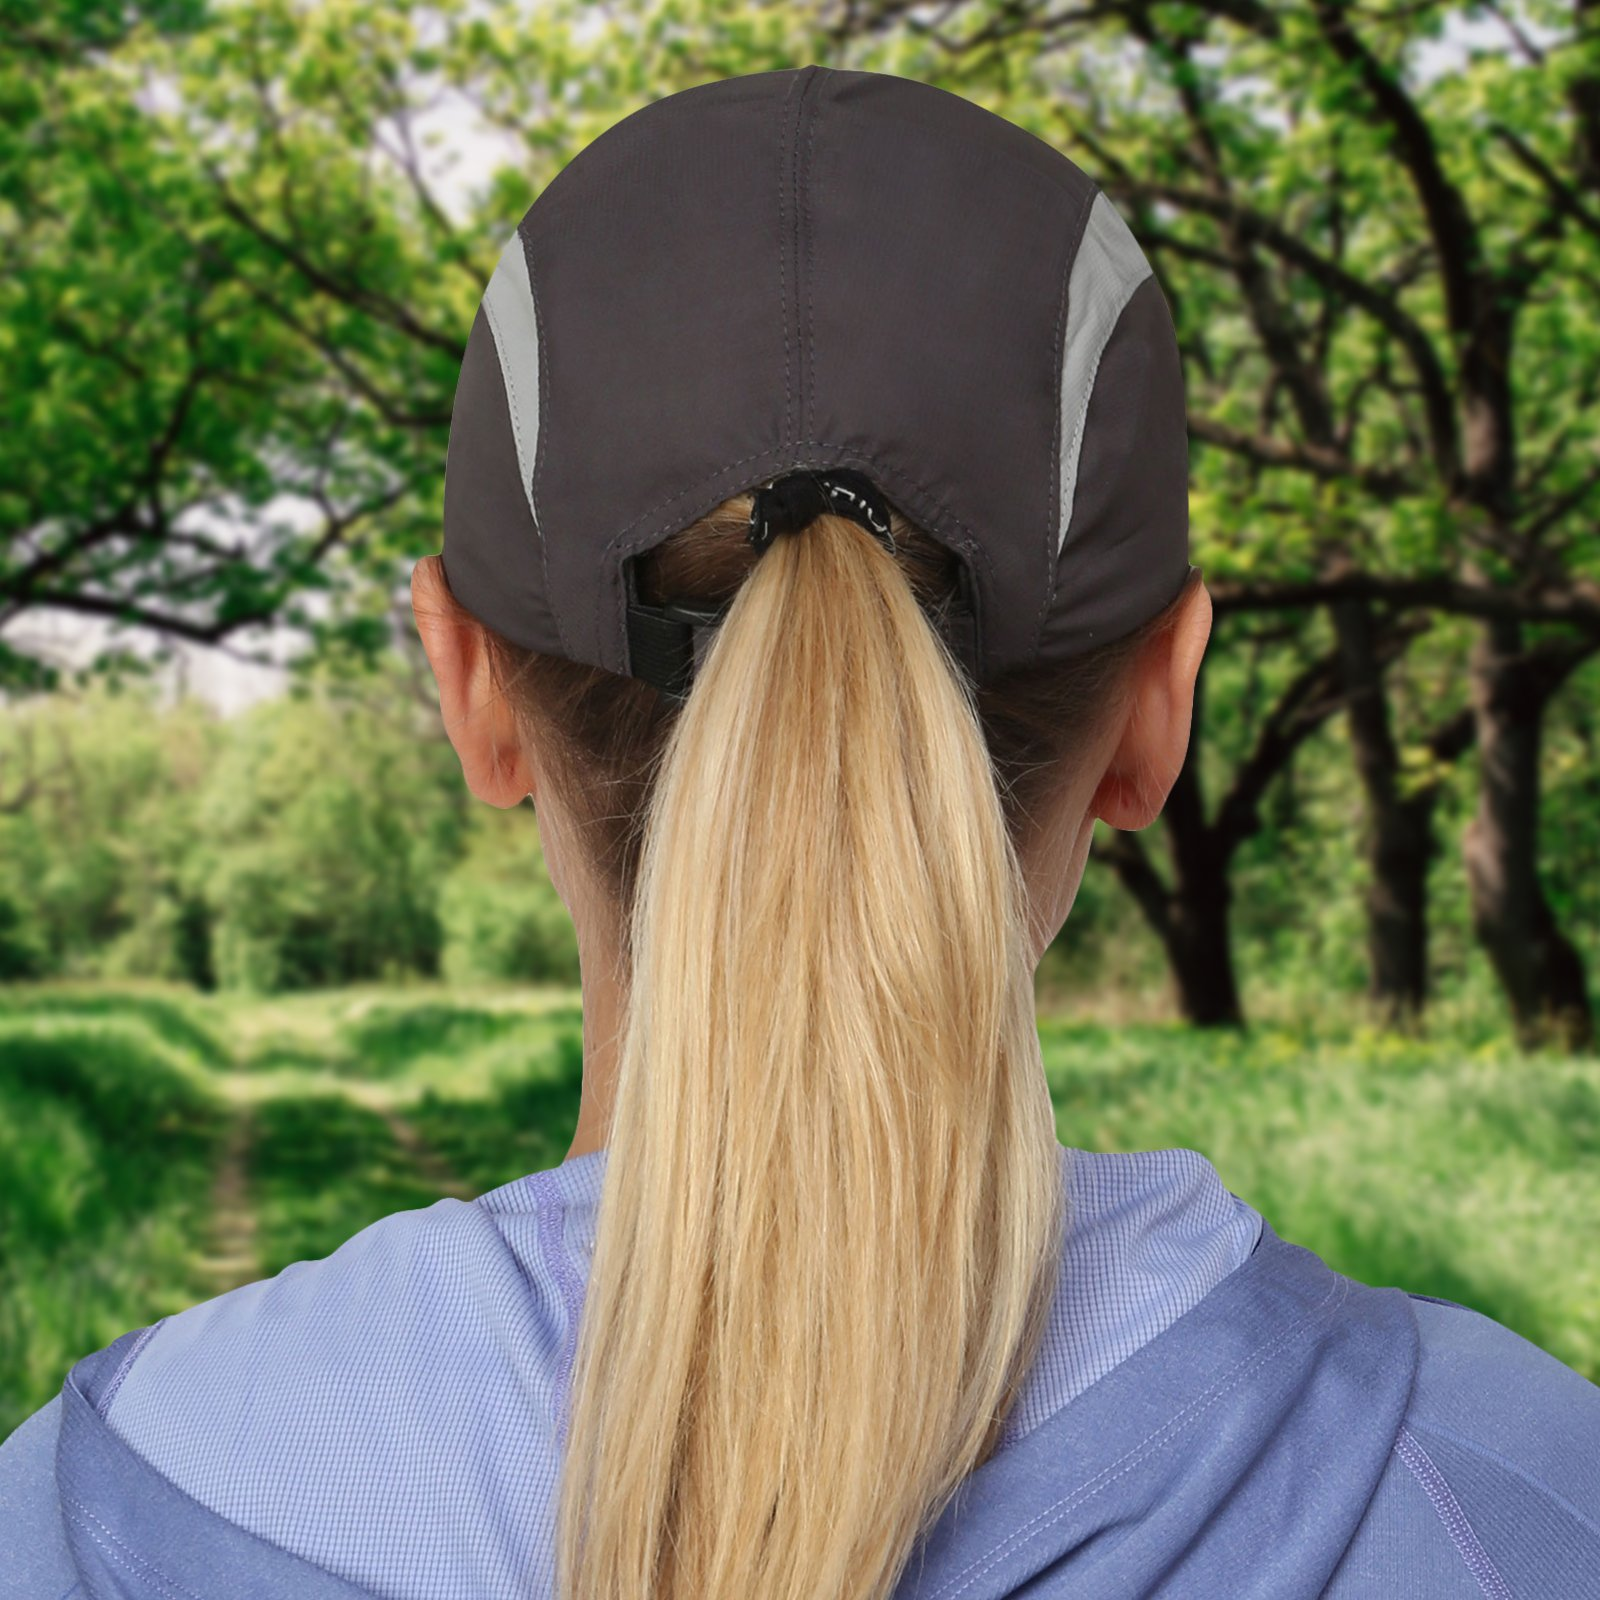 TrailHeads Lightweight Travel Hat | Summer Running Cap for Women | Folding Hat with UV Protection - Medium/Large by TrailHeads (Image #4)